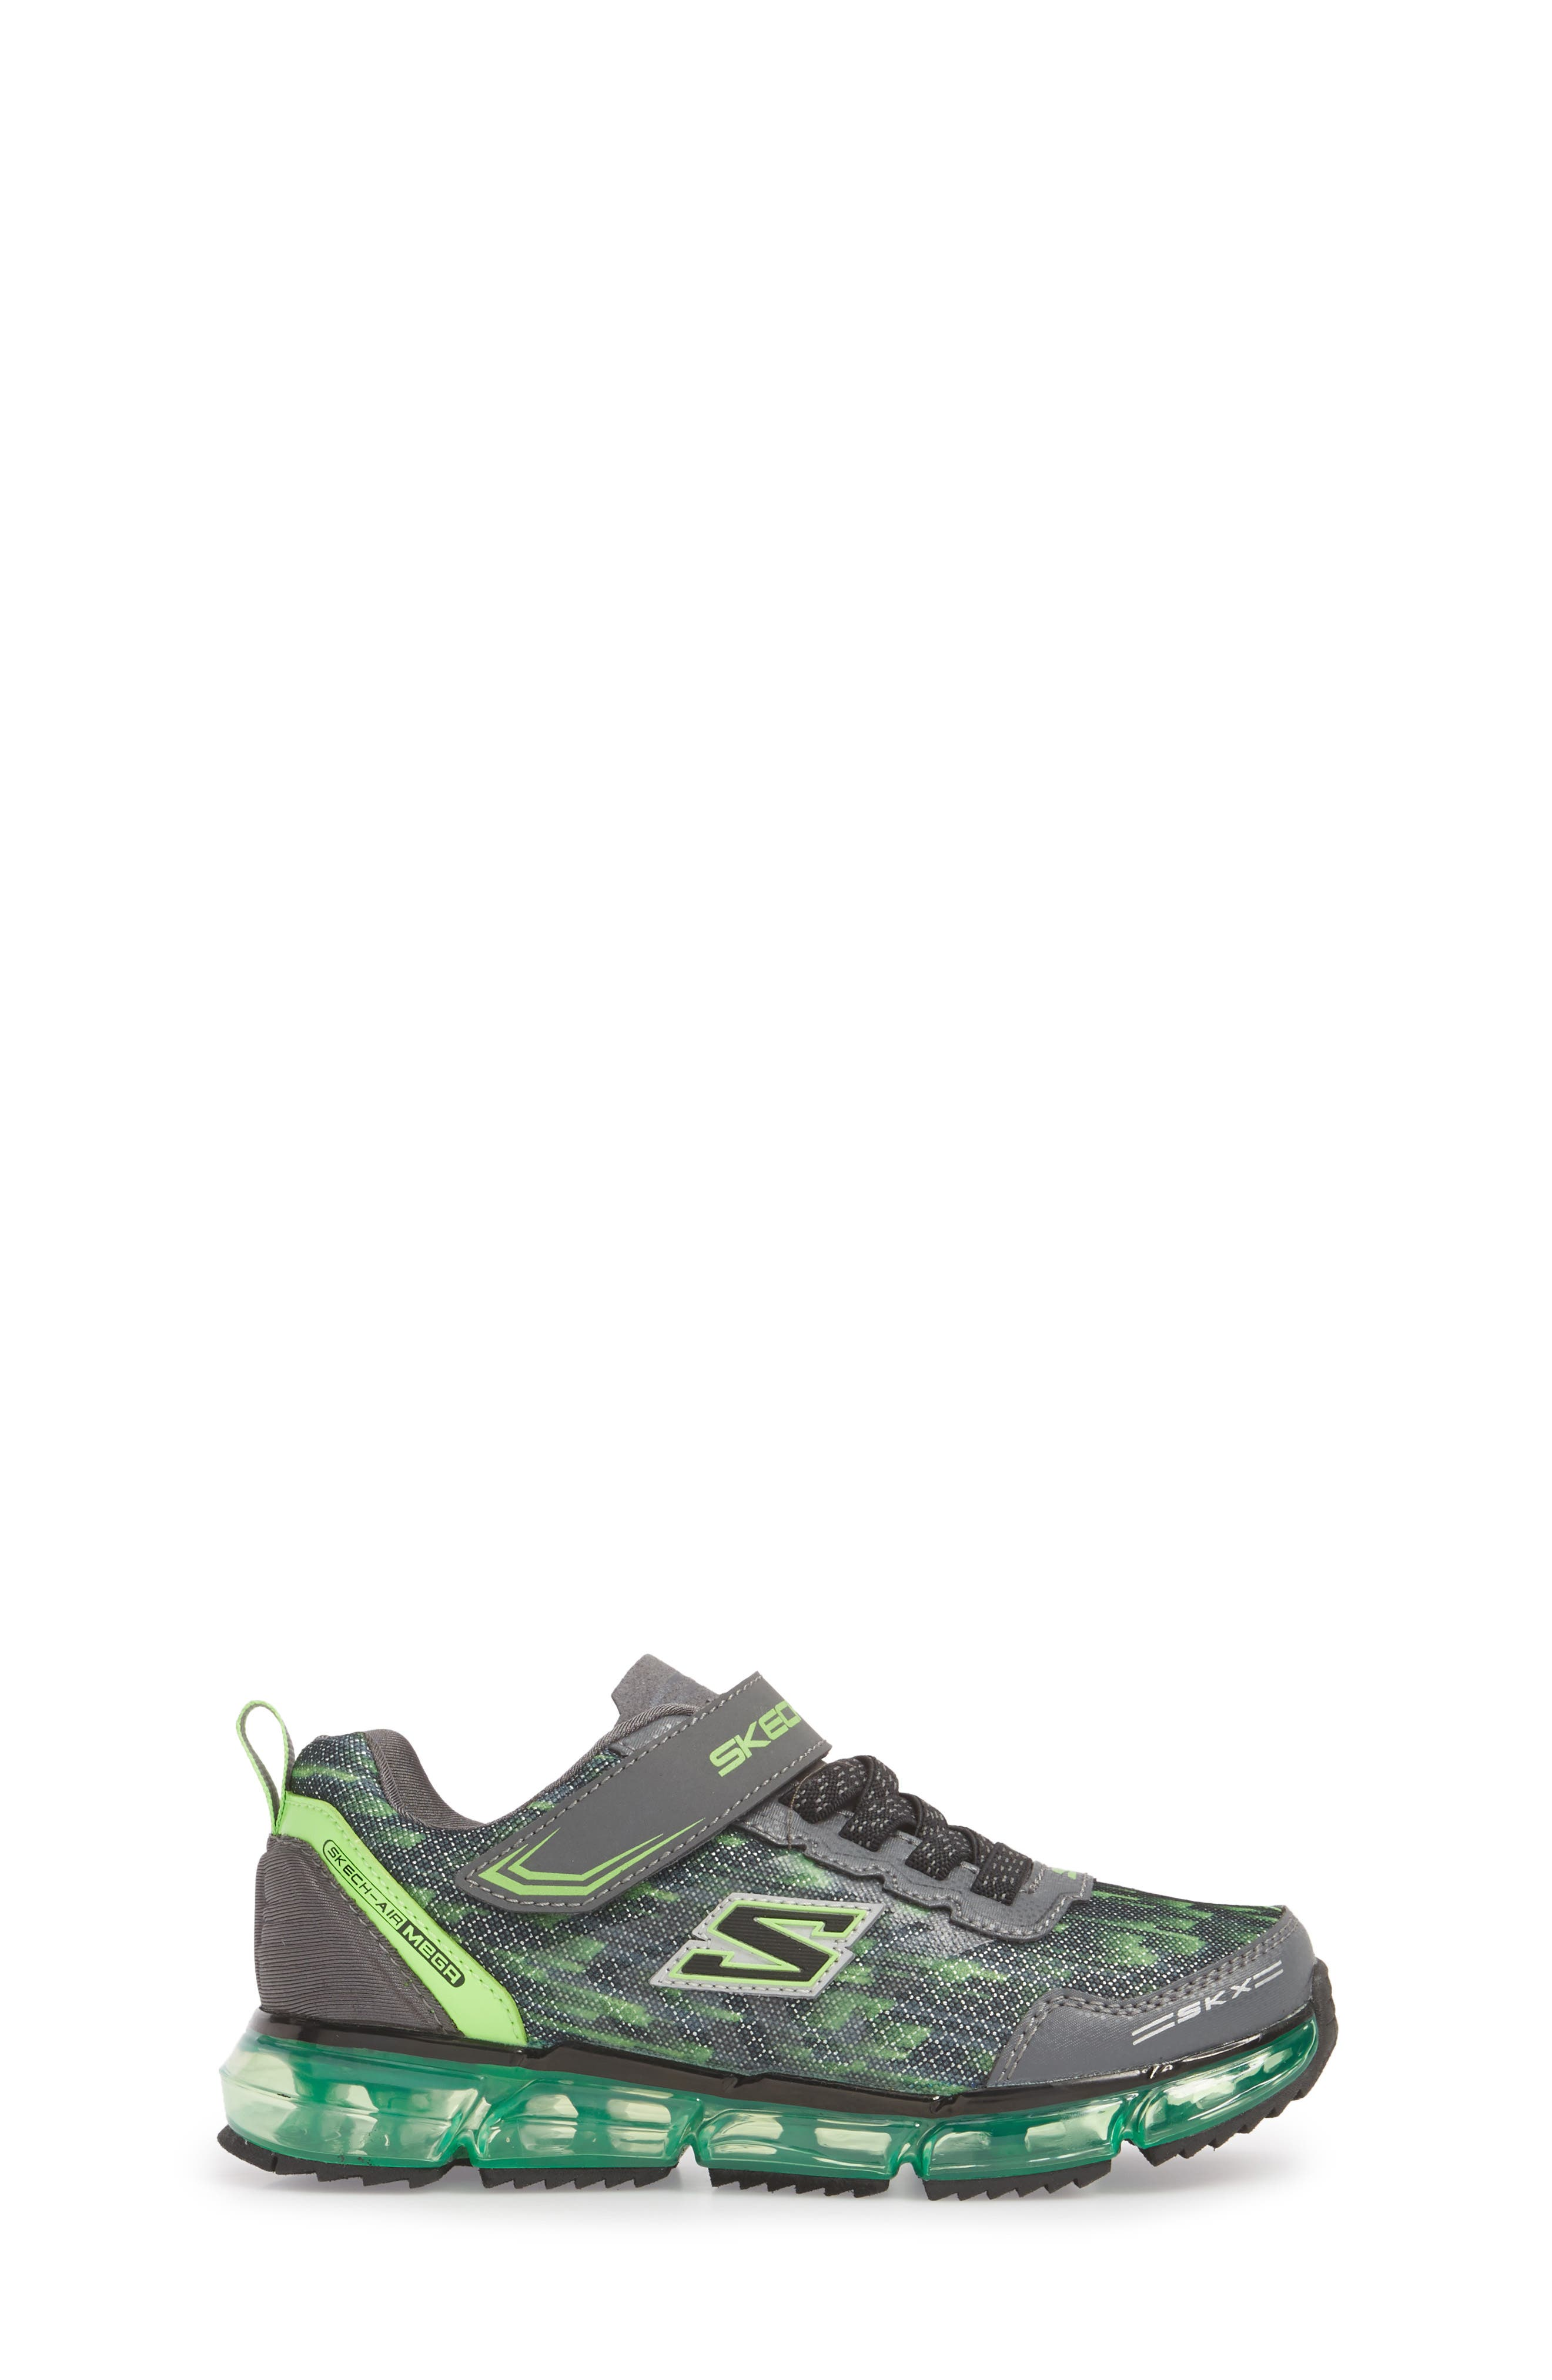 Skech-Air Mega Sneaker,                             Alternate thumbnail 3, color,                             001